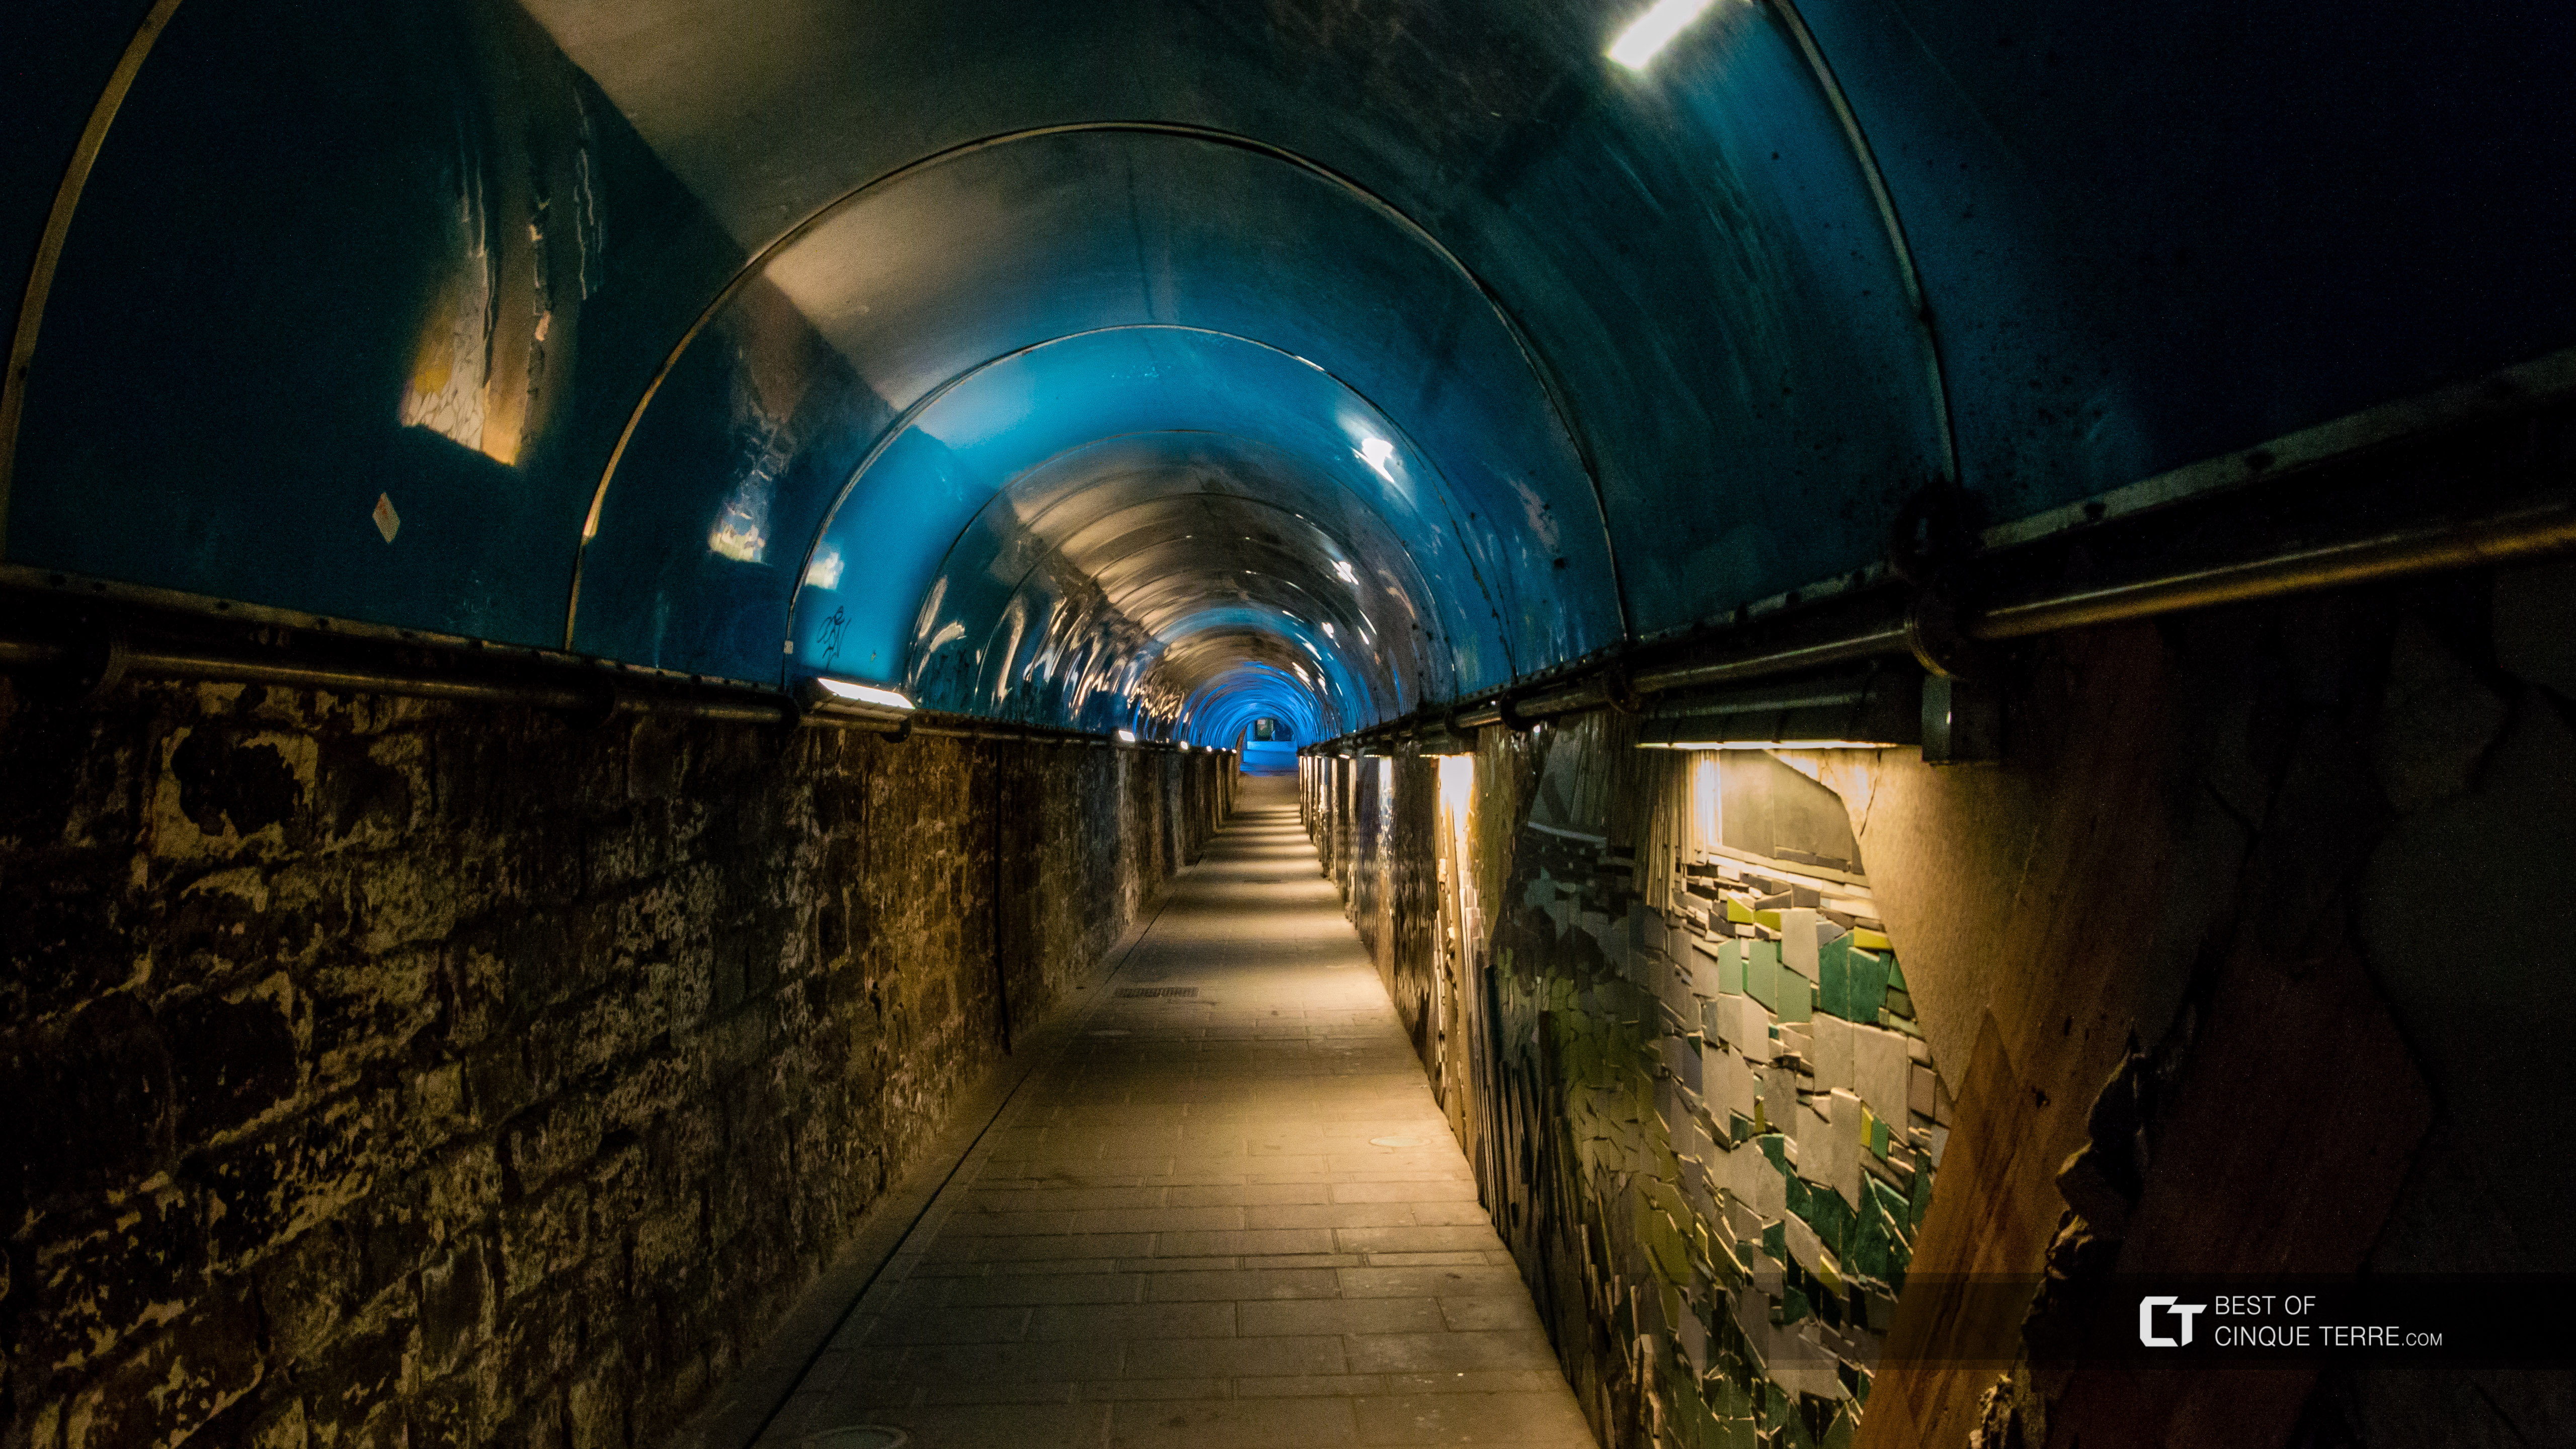 The tunnel between the main street and the train station, Riomaggiore, Cinque Terre, Italy